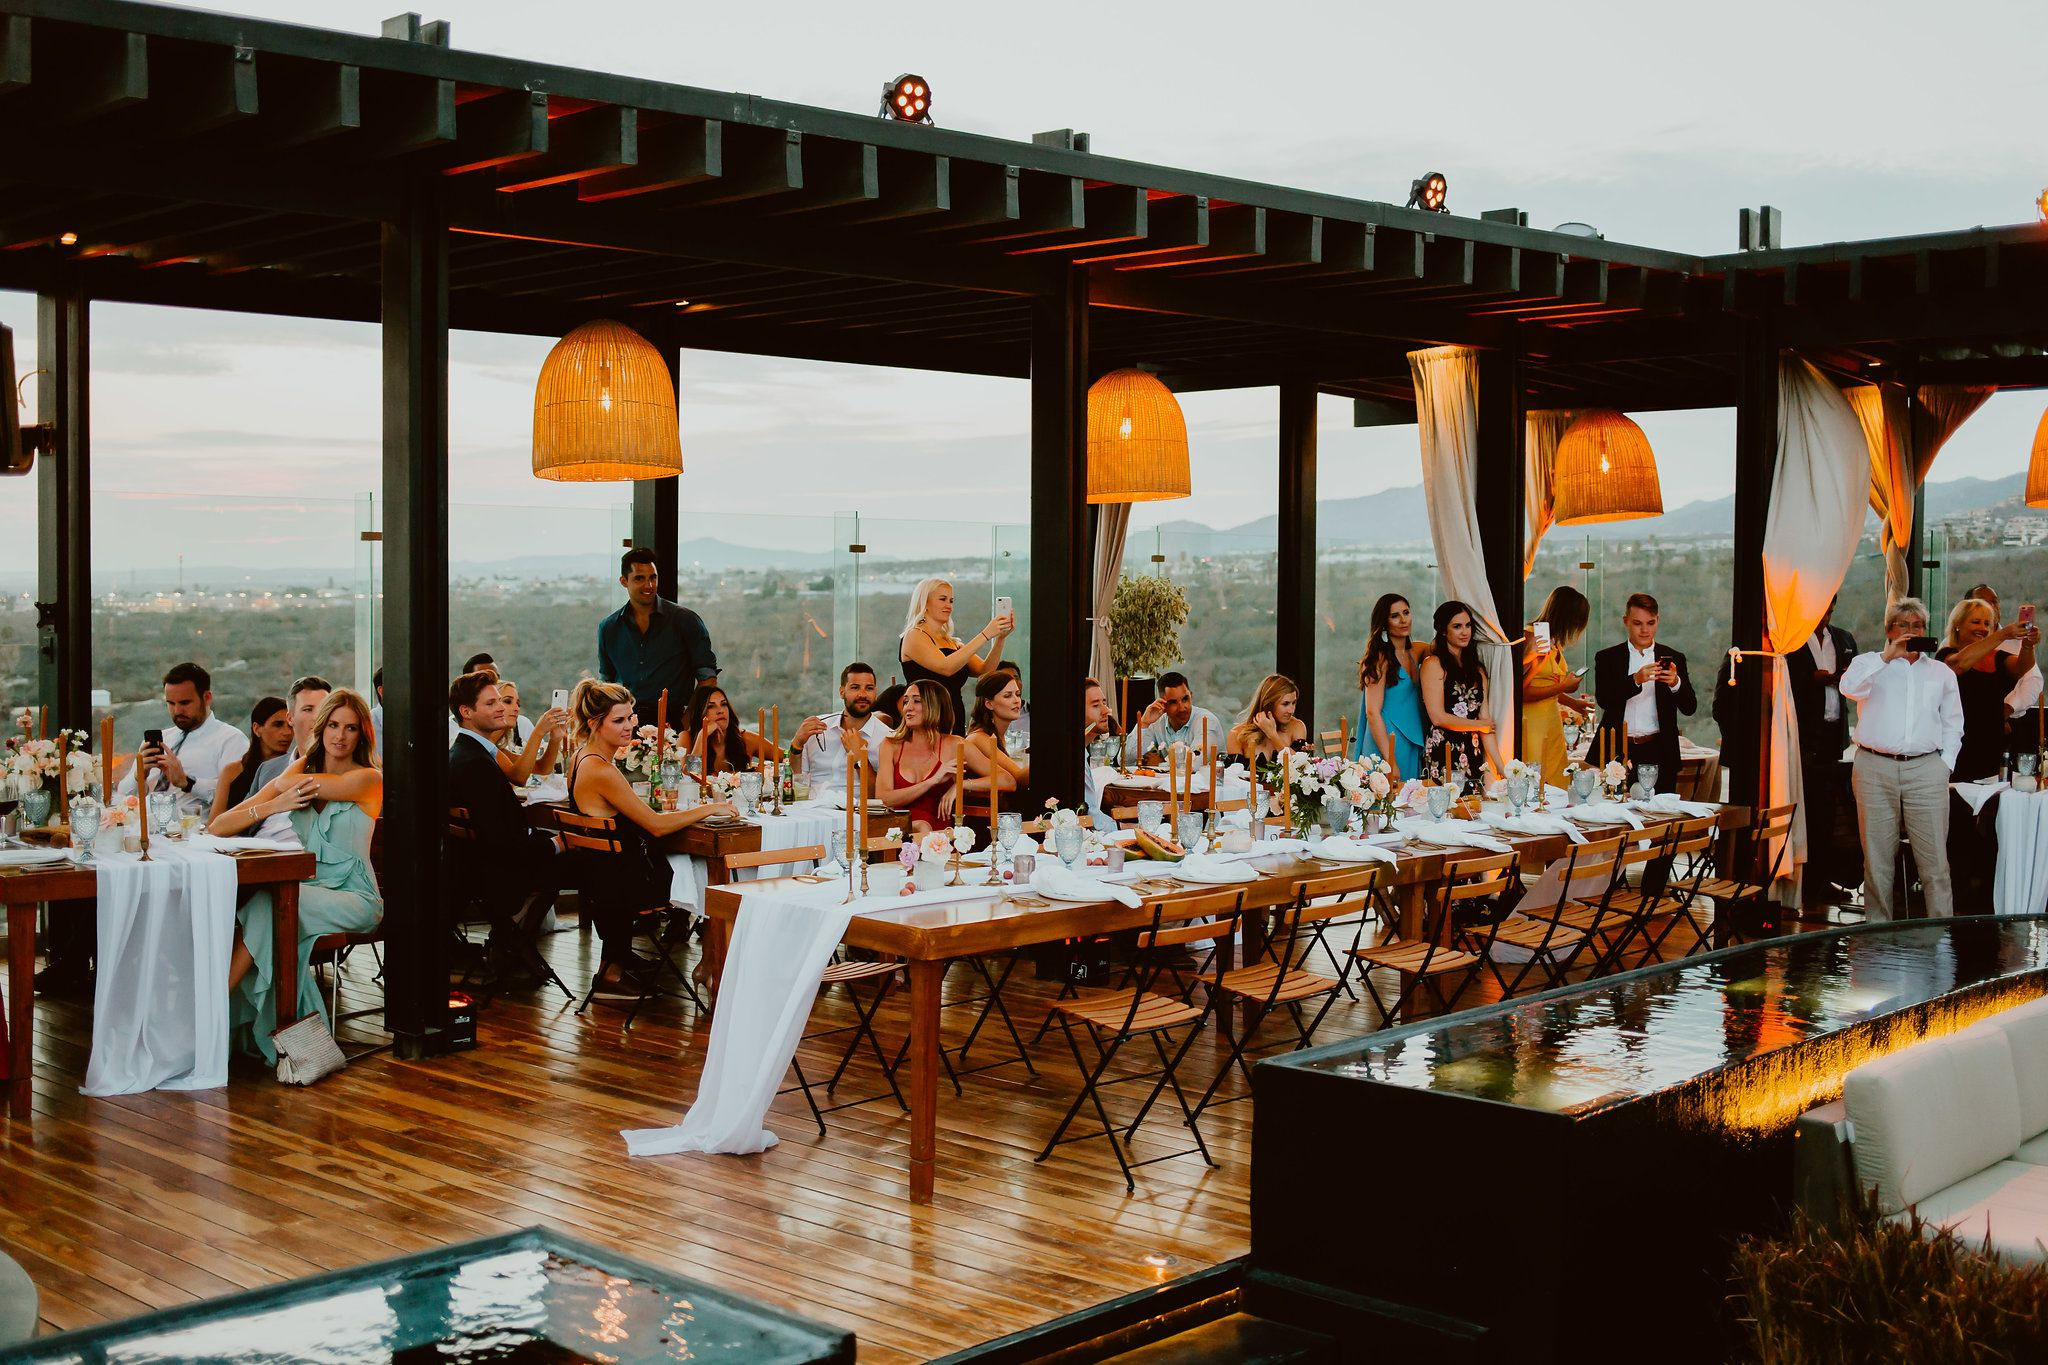 Bridal Table setup at the rooftop by the Cape from Thompson Hotels in Los Cabos Mexico. Design by Lola from Florenta and Wedding Planning by Cabo Wedding Services